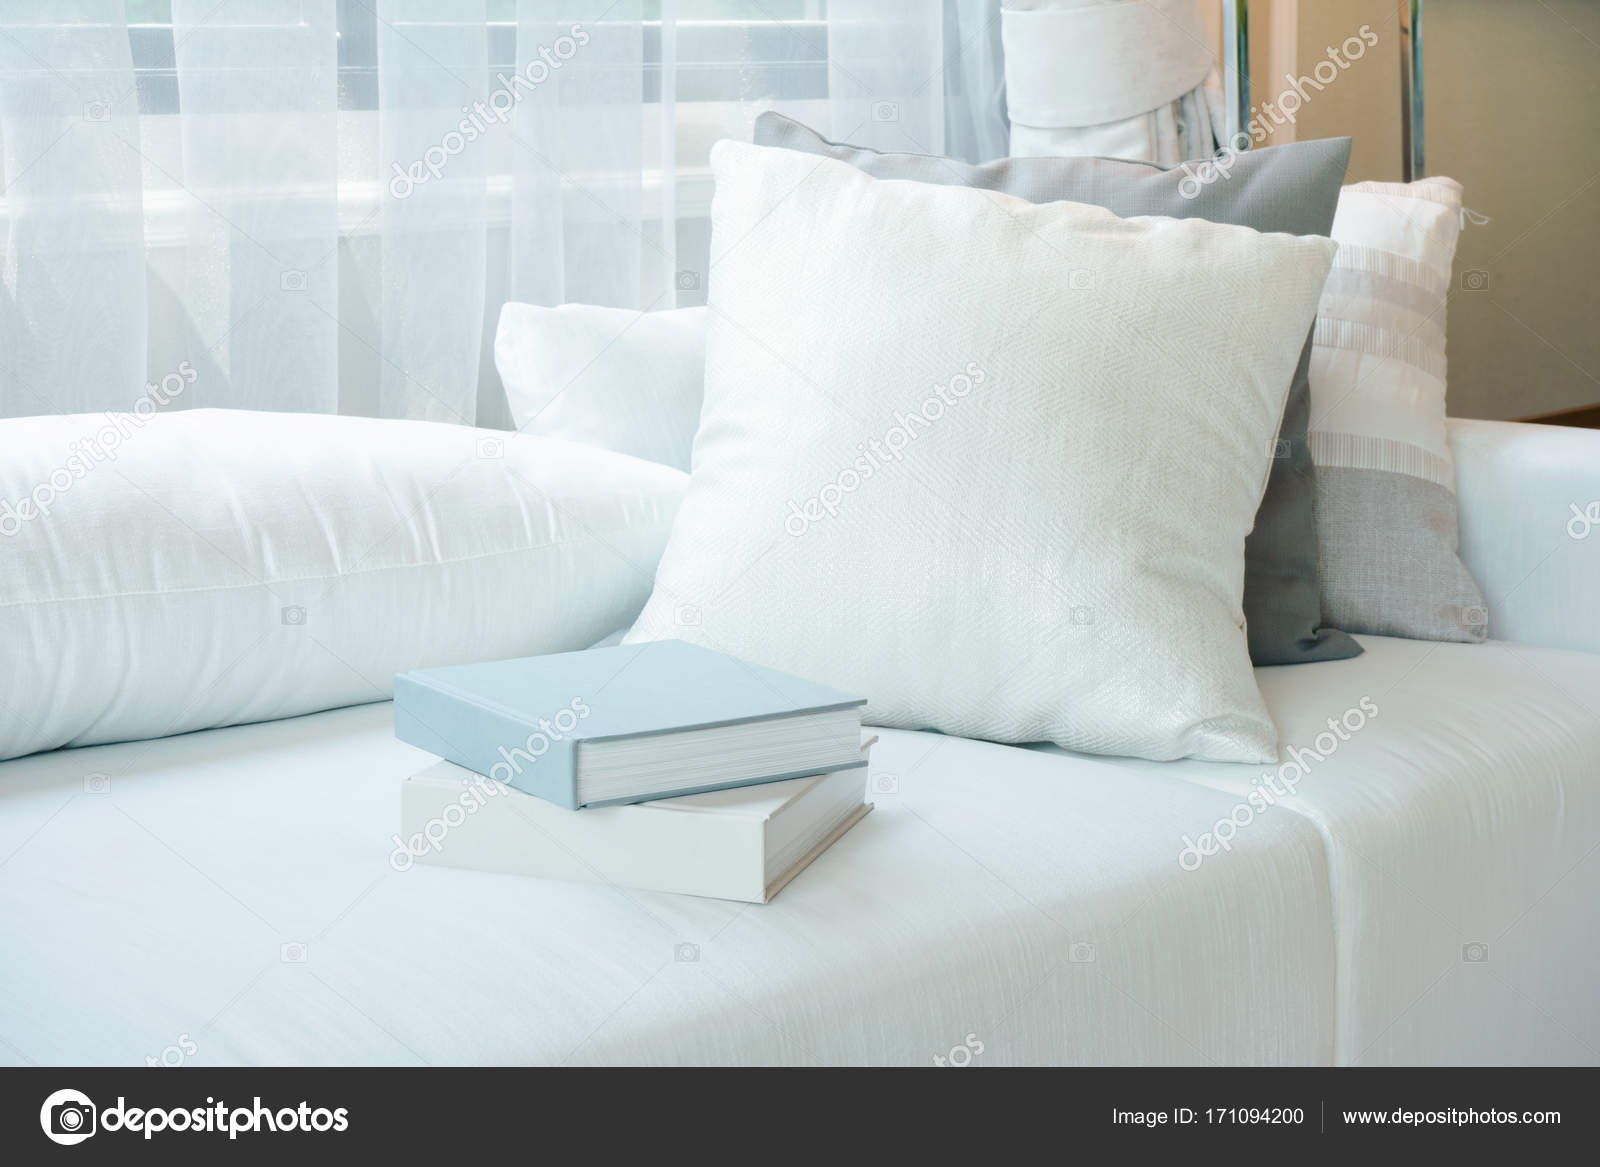 White pillows and books setting on white sofa in modern living room ...